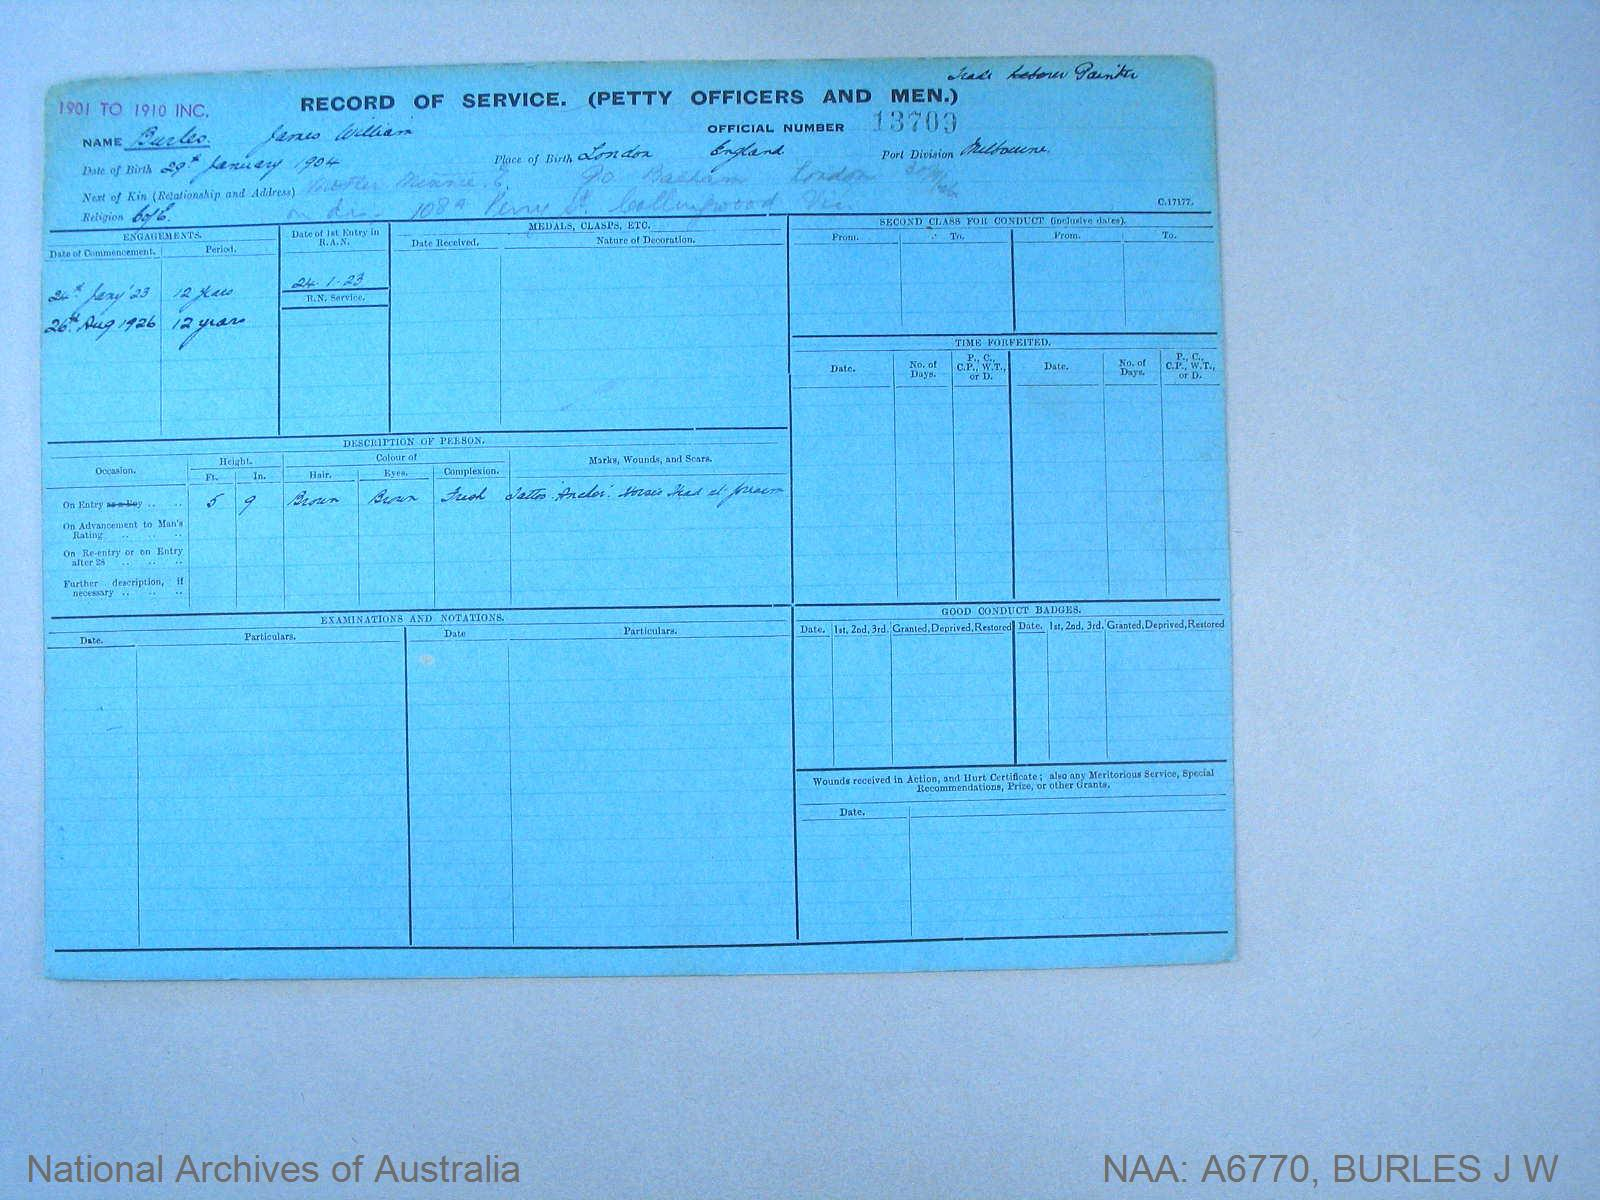 BURLES JAMES WILLIAM : Service Number - 13709 : Date of birth - 29 Feb 1904 : Place of birth - LONDON ENGLAND : Place of enlistment - MELBOURNE : Next of Kin - BURLES MINNIE